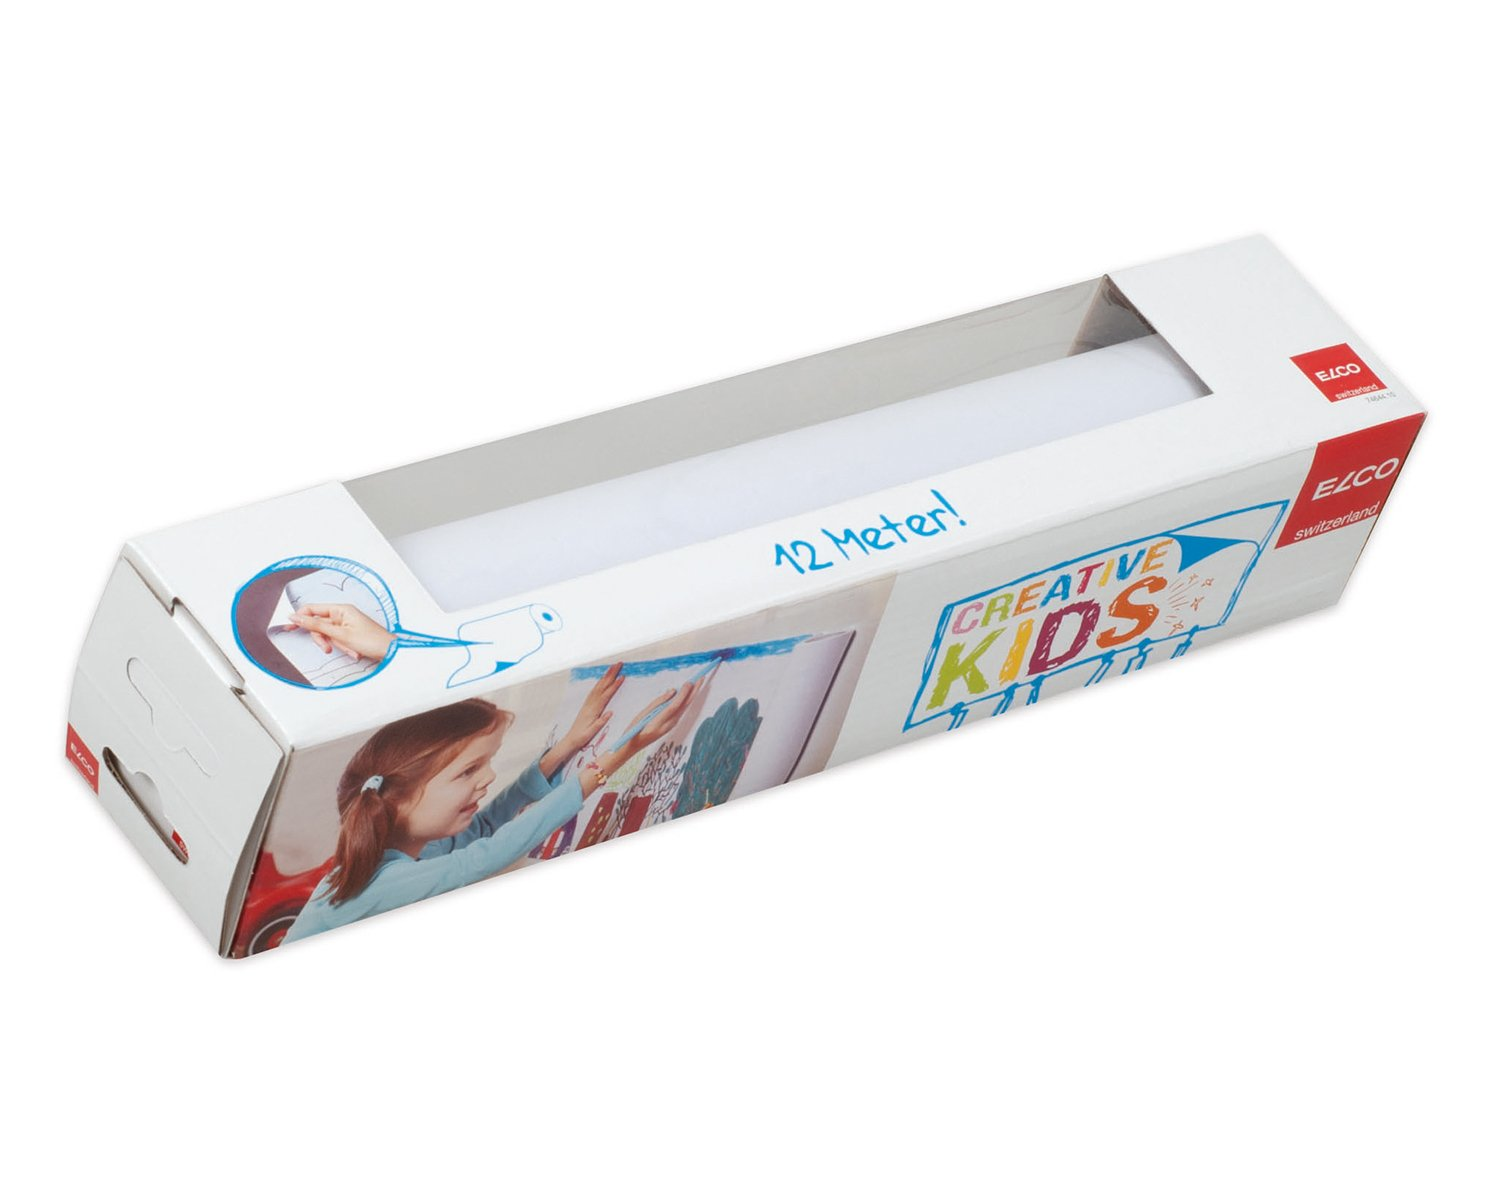 Elco creative kids drawing roll Image